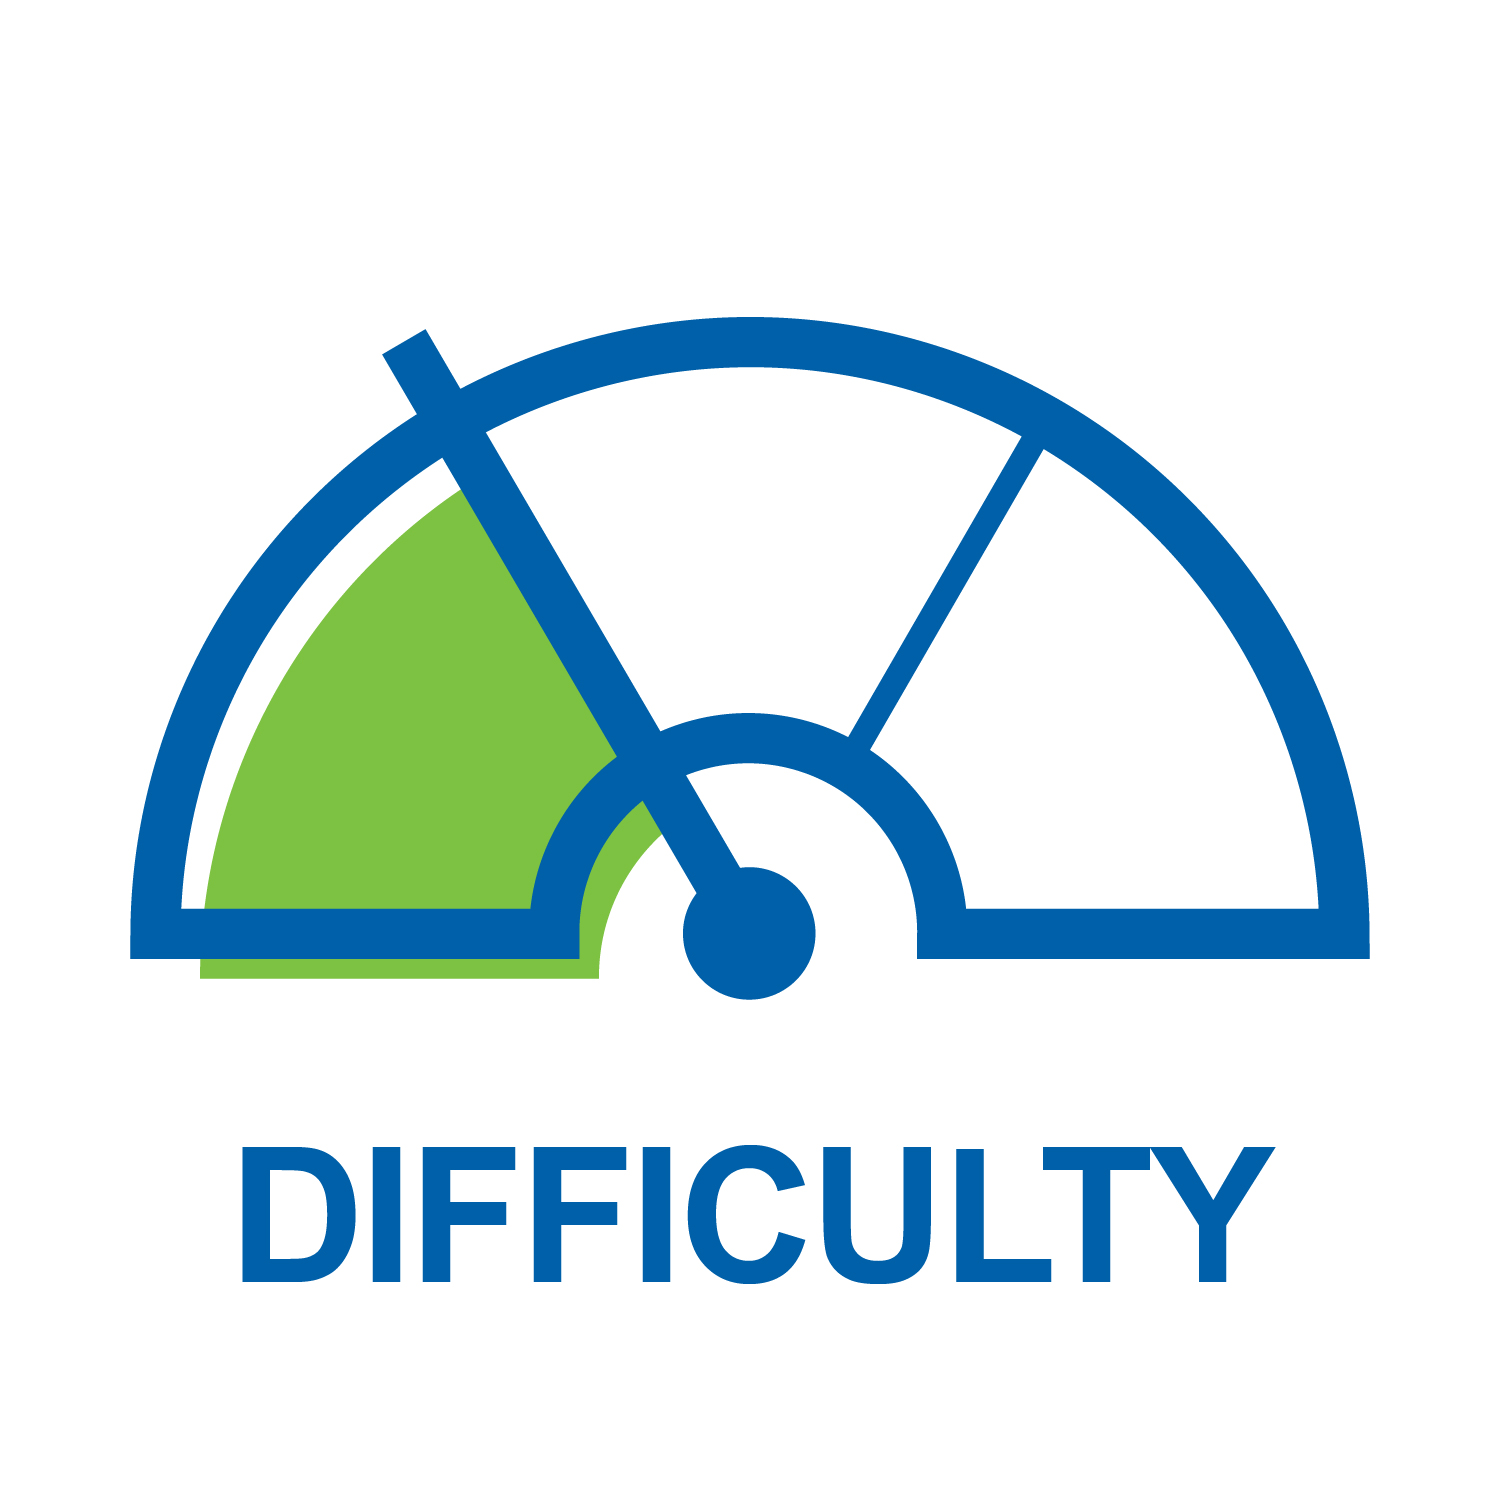 icon-difficulty-01.jpg